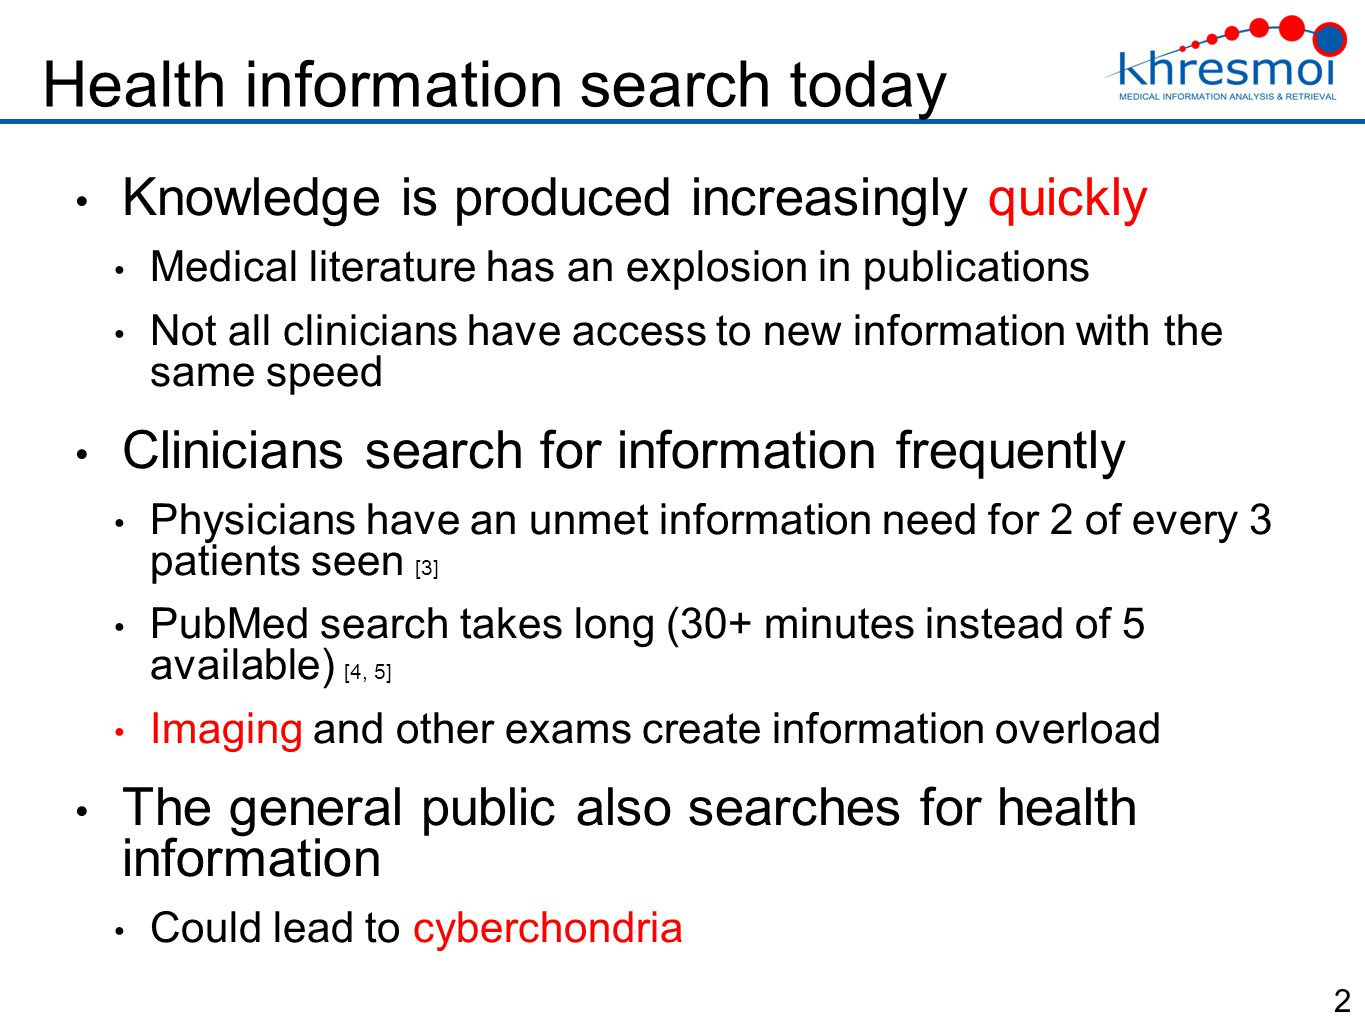 Health information search today Knowledge is produced increasingly quickly Medical literature has an explosion in publications Not all clinicians have access to new information with the same speed Clinicians search for information frequently Physicians have an unmet information need for 2 of every 3 patients seen [3] PubMed search takes long (30+ minutes instead of 5 available) [4, 5] Imaging and other exams create information overload The general public also searches for health information Could lead to cyberchondria 2